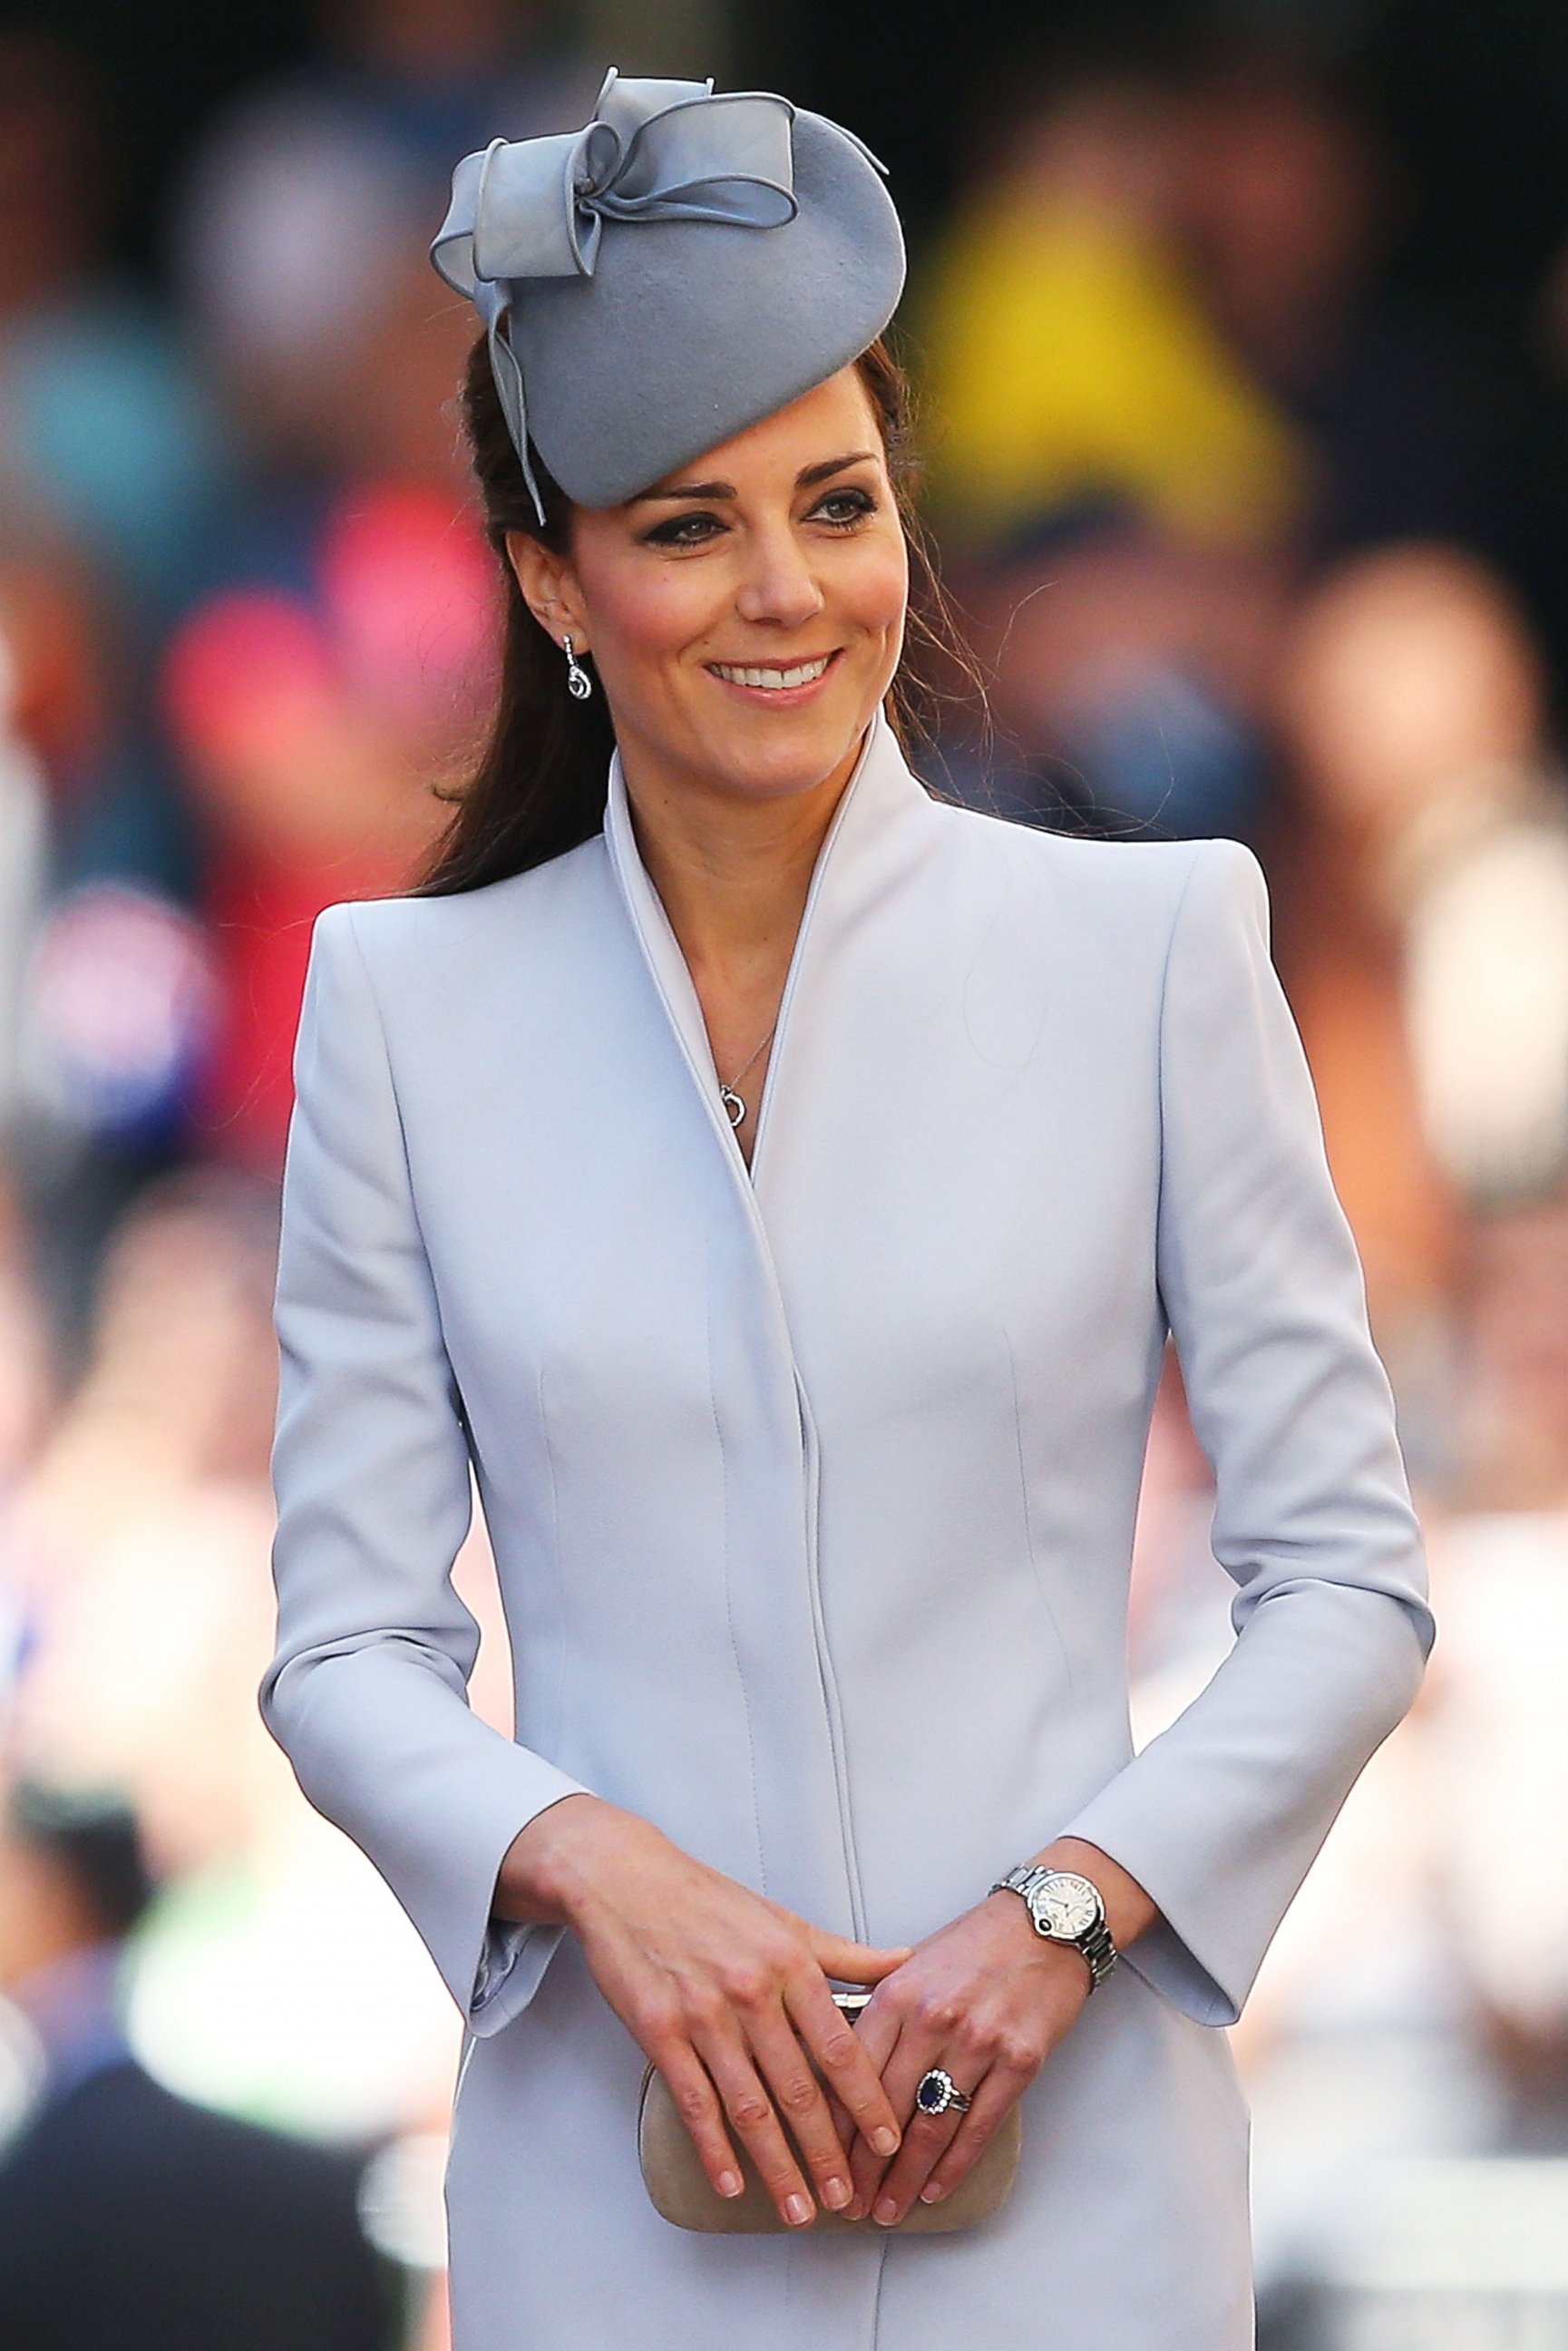 Kate Middleton Looks Glamorous in Shades of Gray